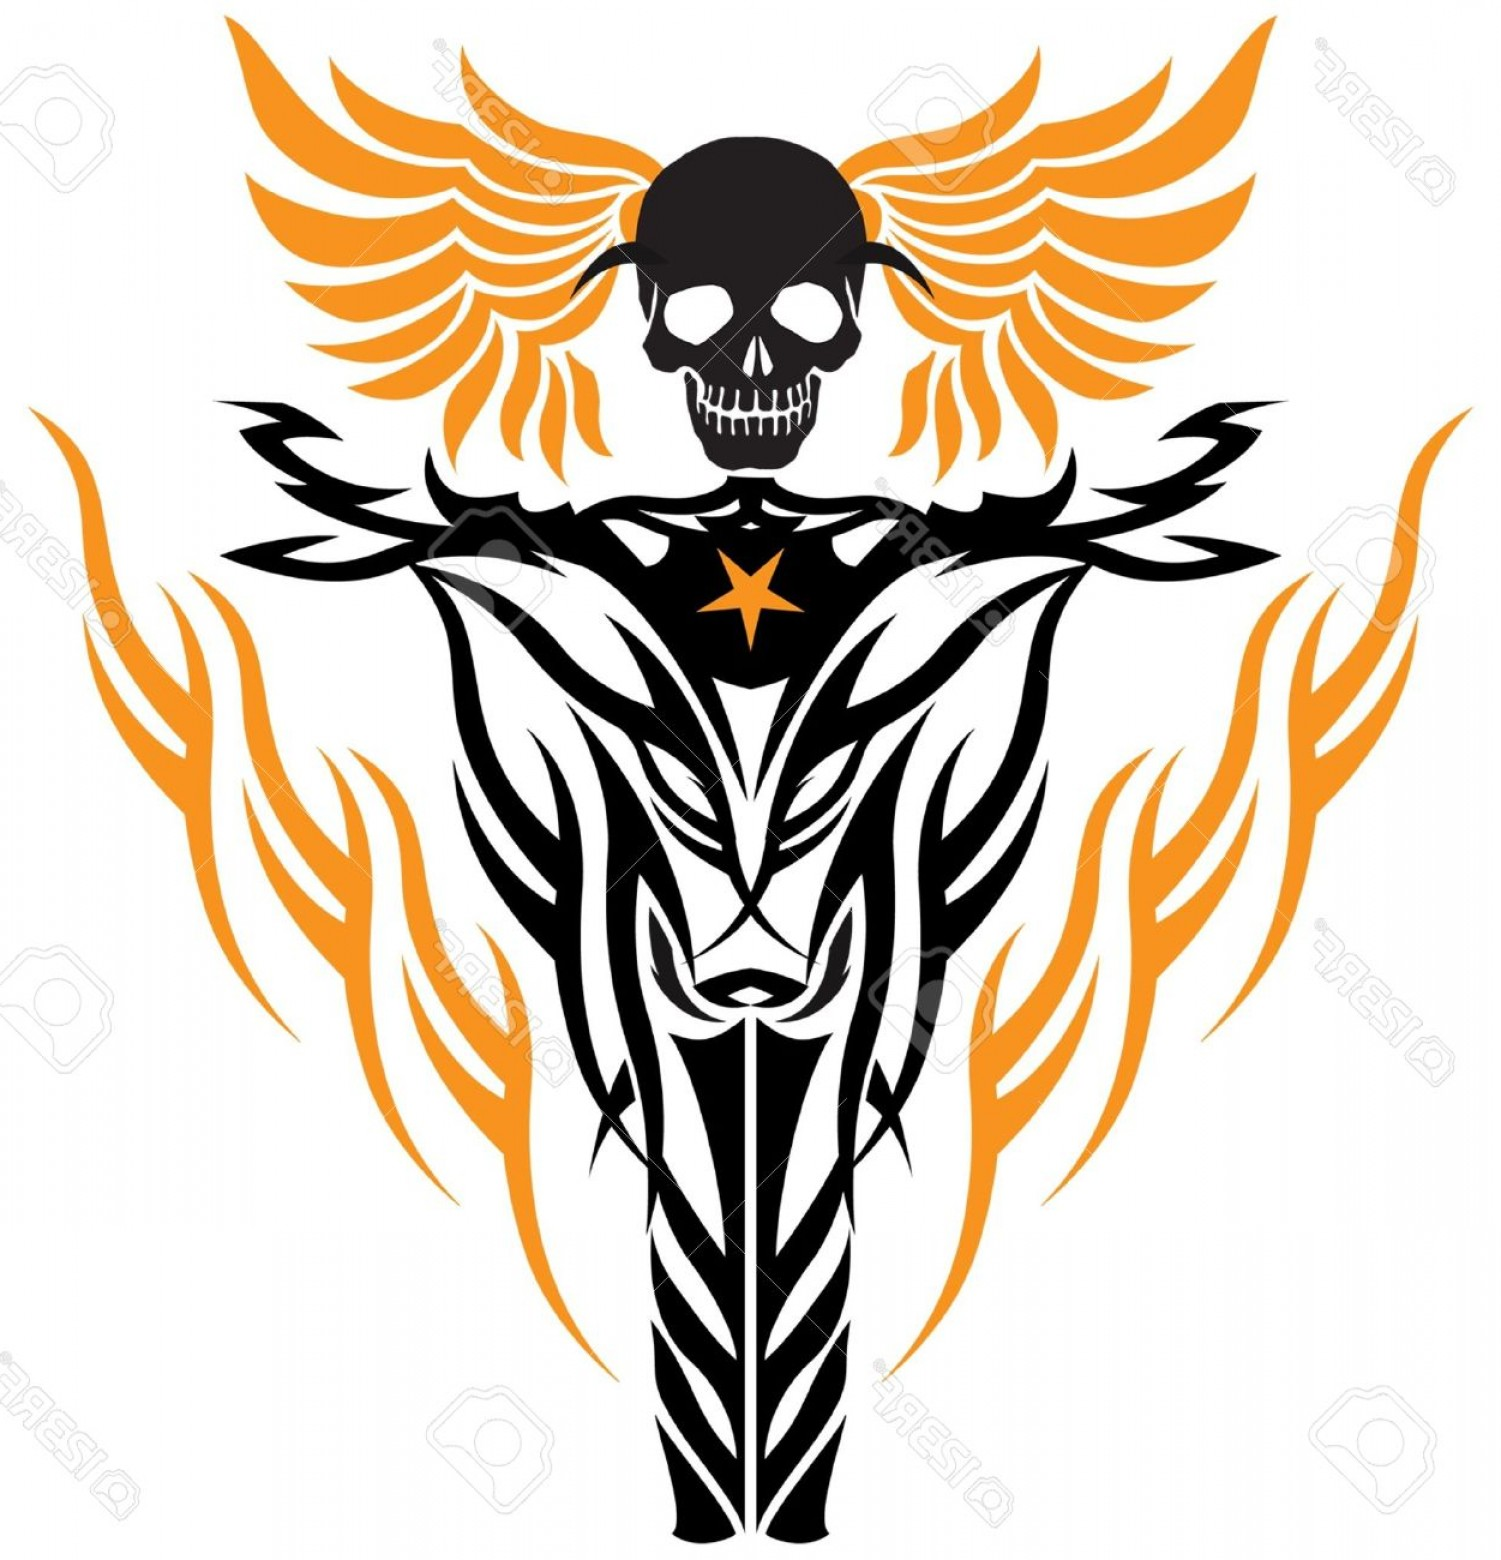 Flying Skull Vector: Phototribal Tattoo Style Flying Skull At Wheel Of Motorcycle